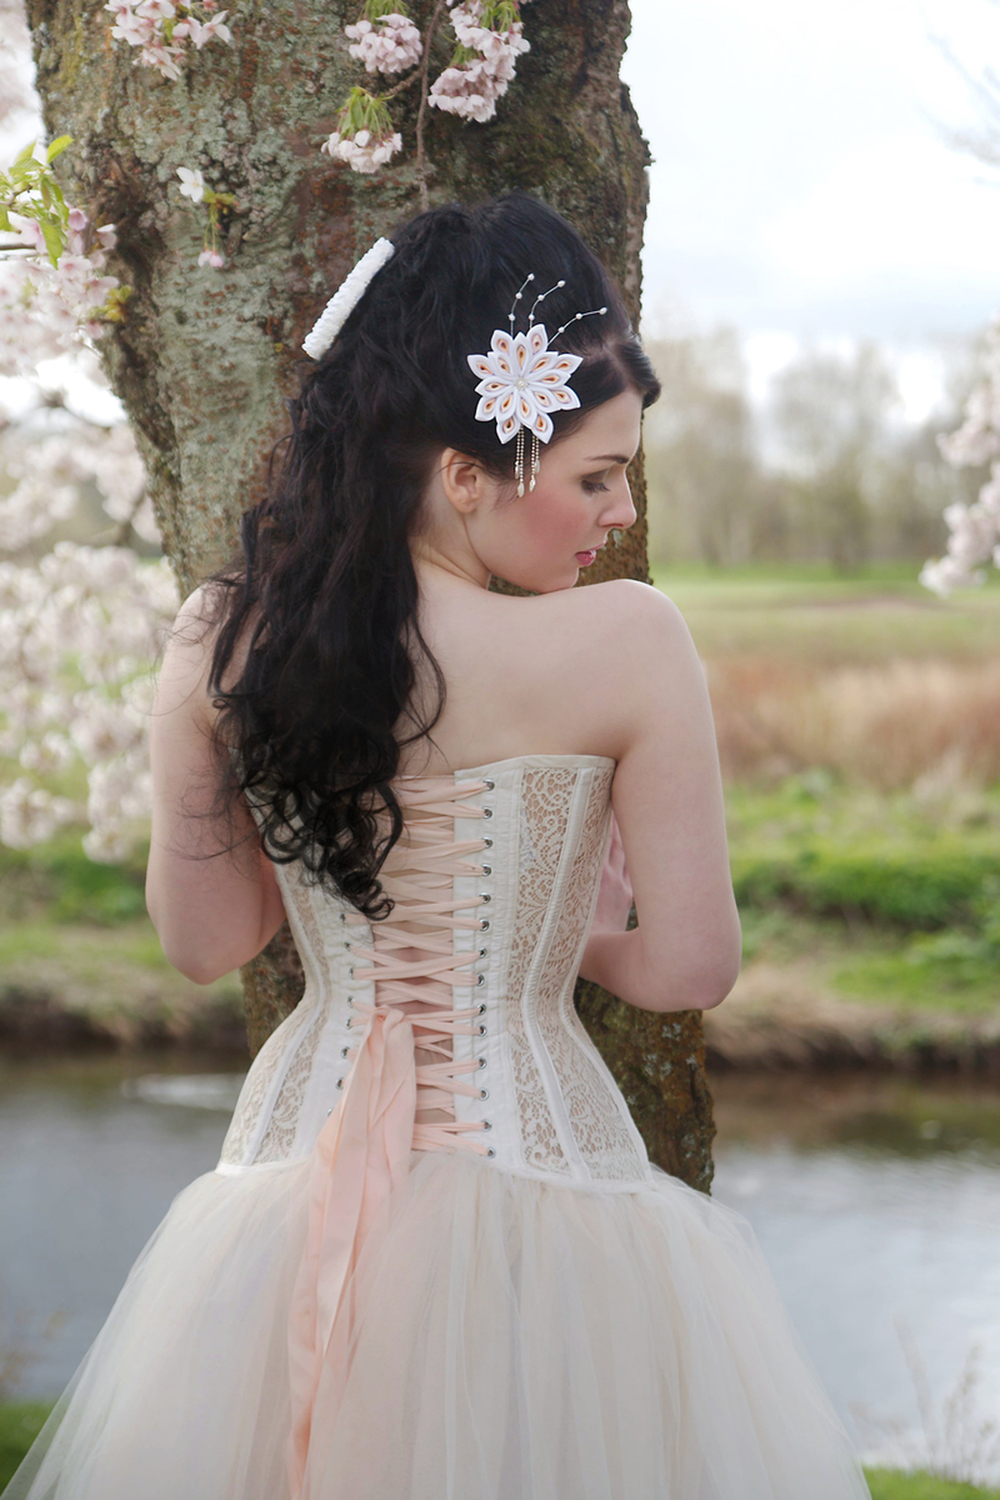 Image by Lousise  Cantwell Photography. Model, Nicolette McKeown. Featuring accessories by Yume Kanzashi